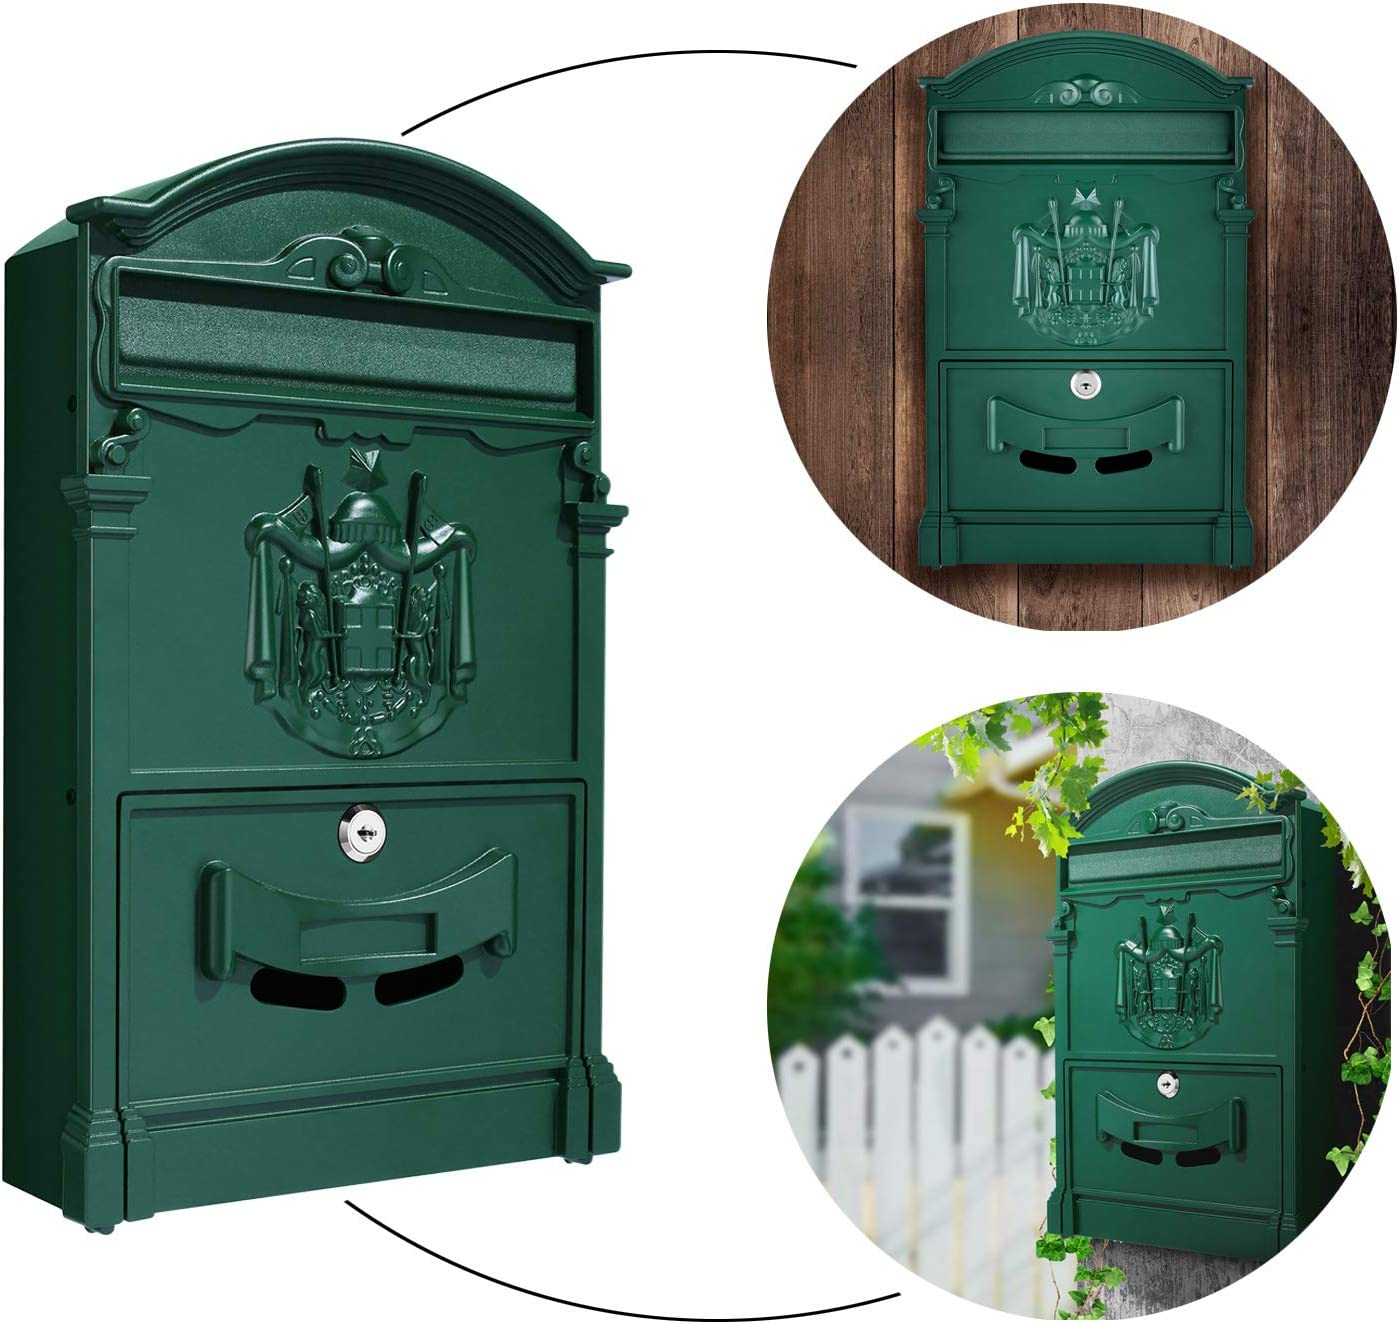 Green Mailbox for Post Retro Style Mailbox That Locks Vintage Wall-Mount Mailboxes Mailbox Vertical Wall Mount on House or Office